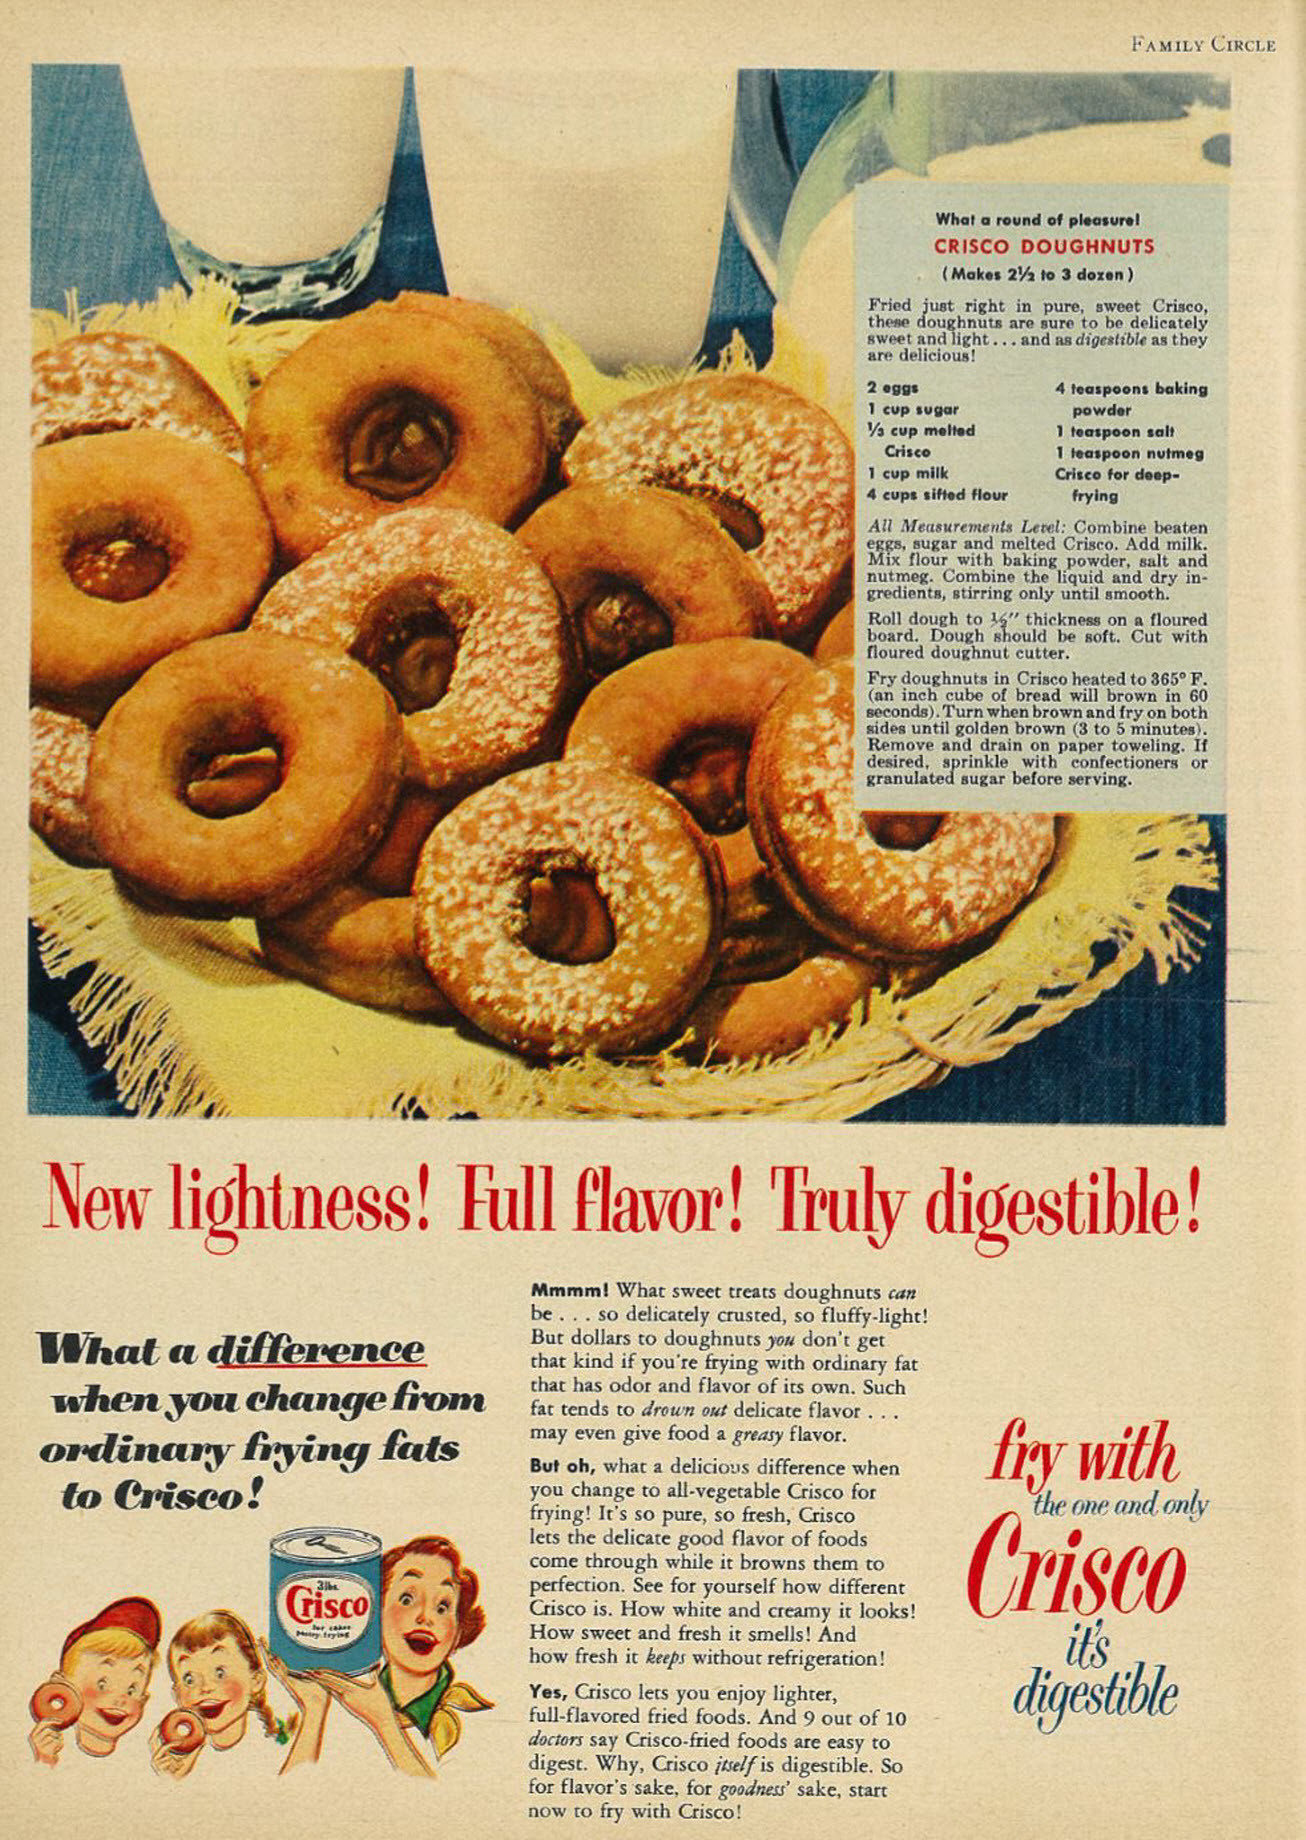 Crisco - New Lightness! Full Flavor! Truly Digestible! | Flickr